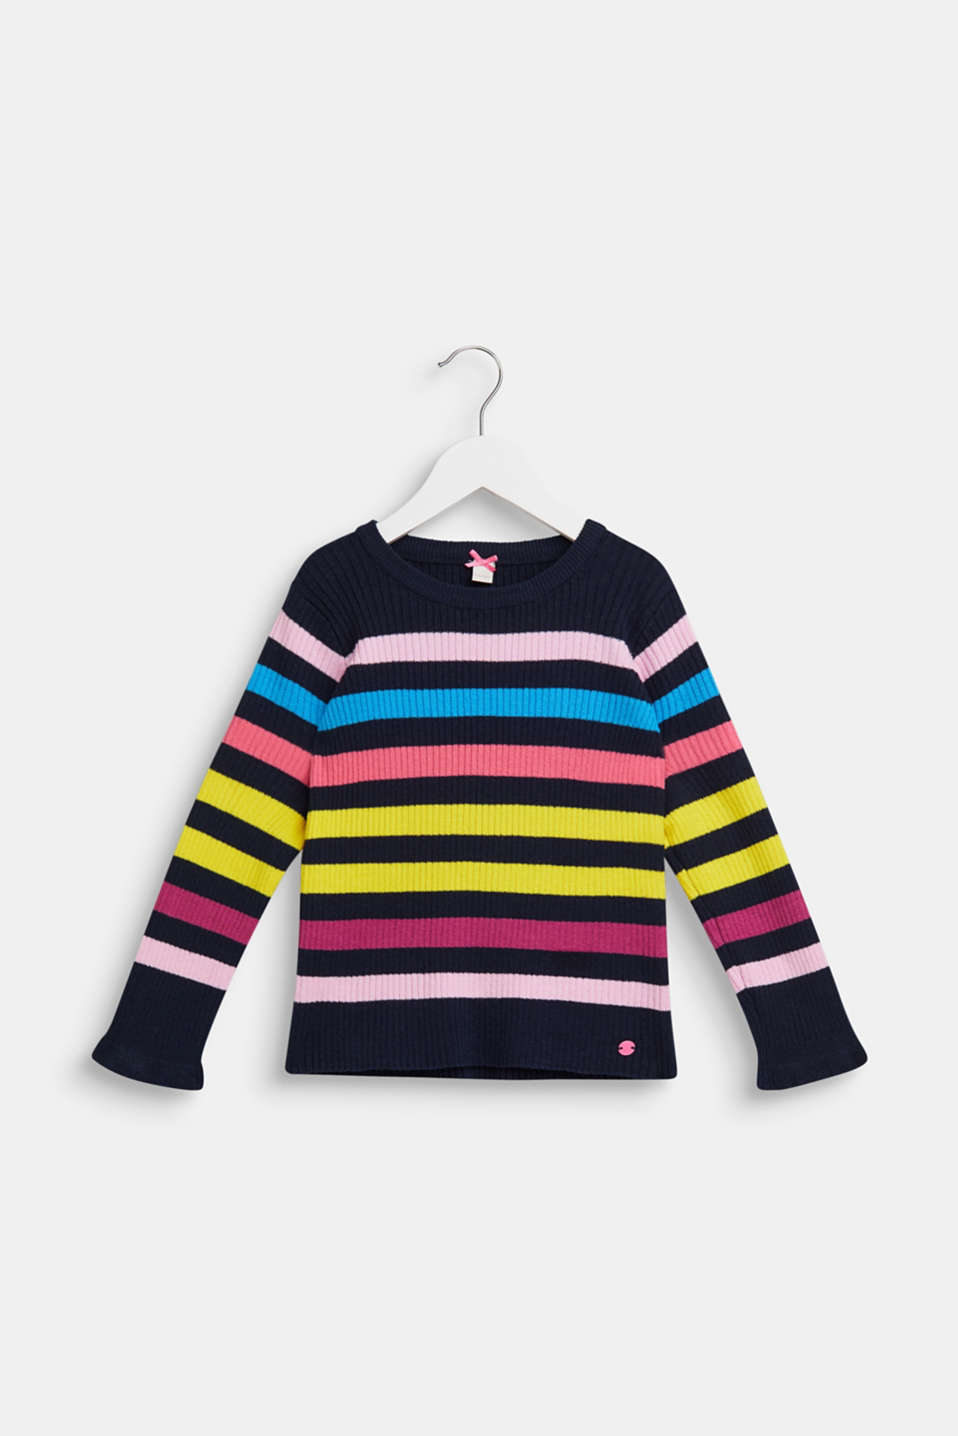 Esprit - Rib knit jumper with colourful stripes